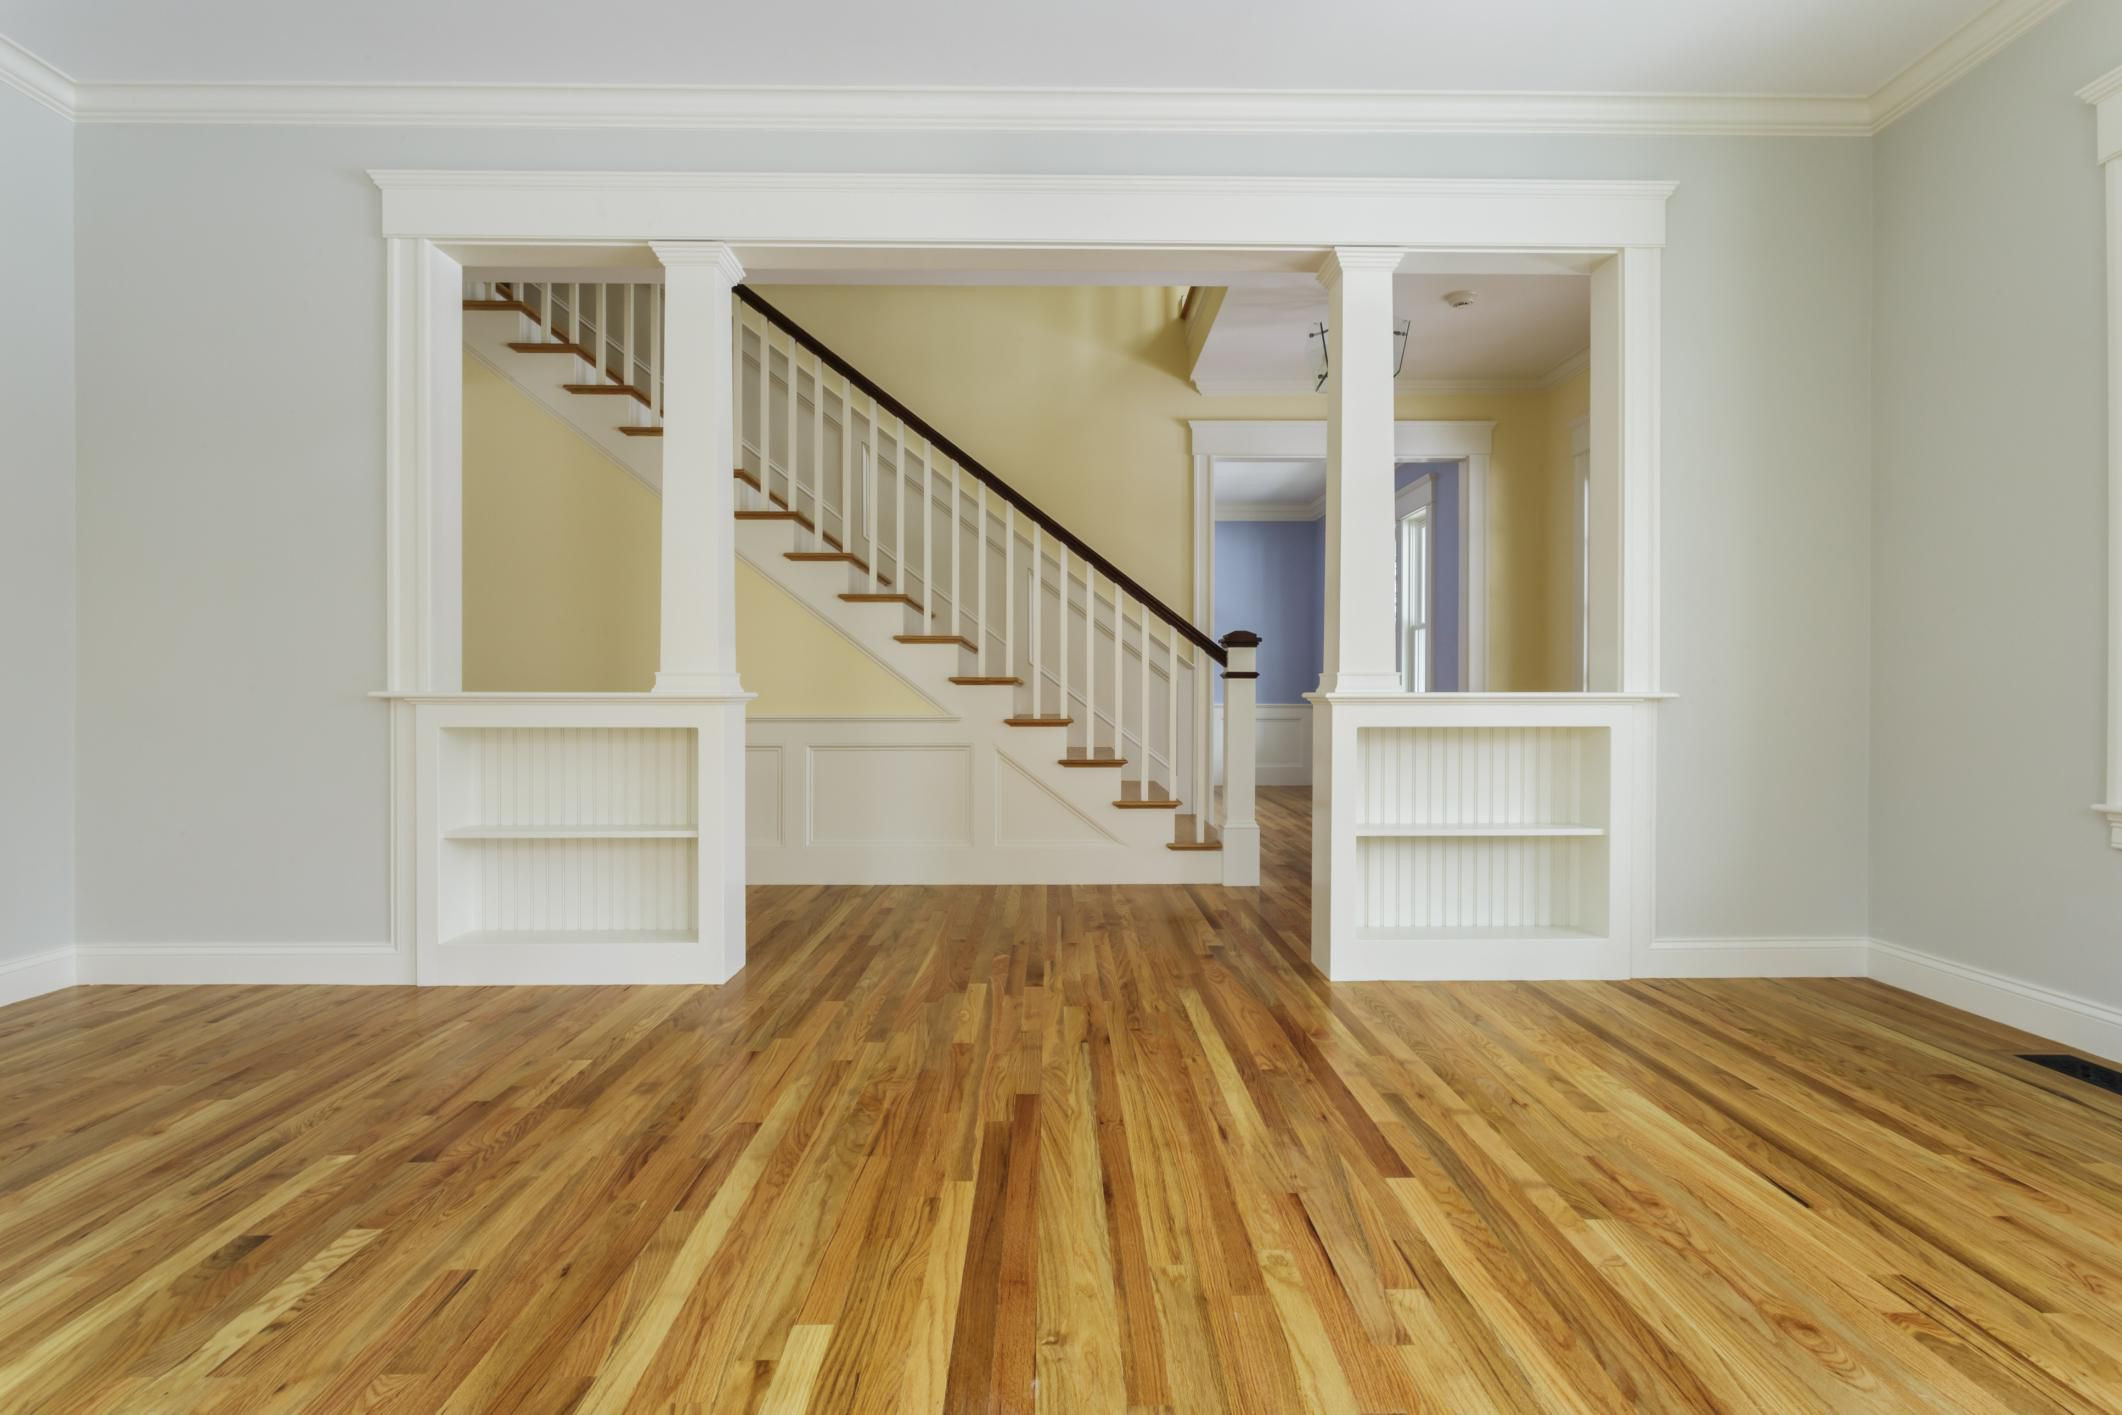 australian hardwood flooring types of guide to solid hardwood floors with 168686571 56a49f213df78cf772834e24